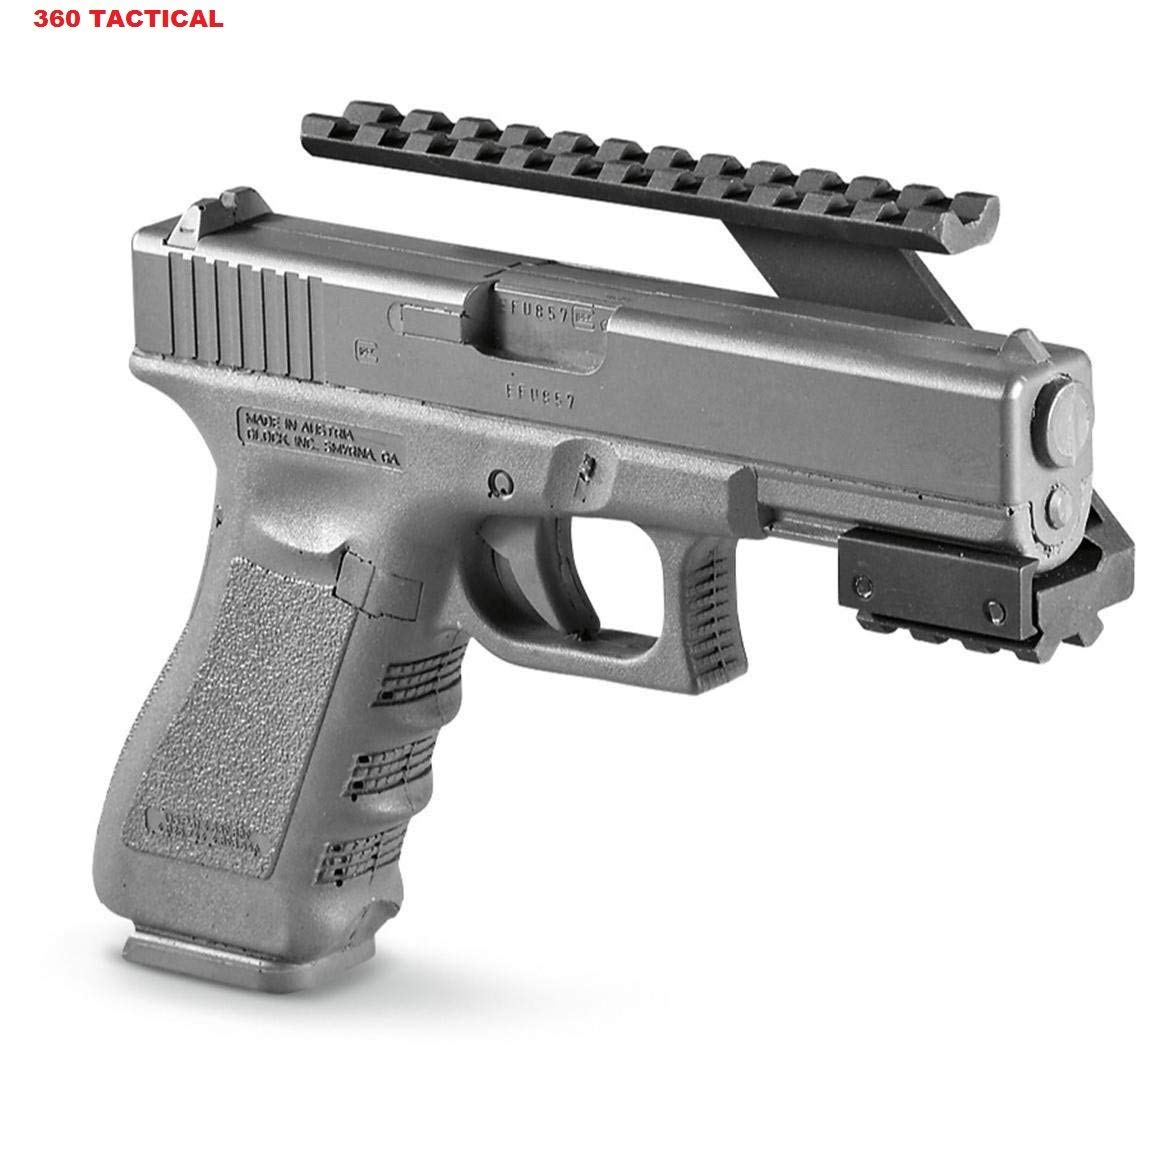 360 Tactical Gunsmithing Picatinny Accessories